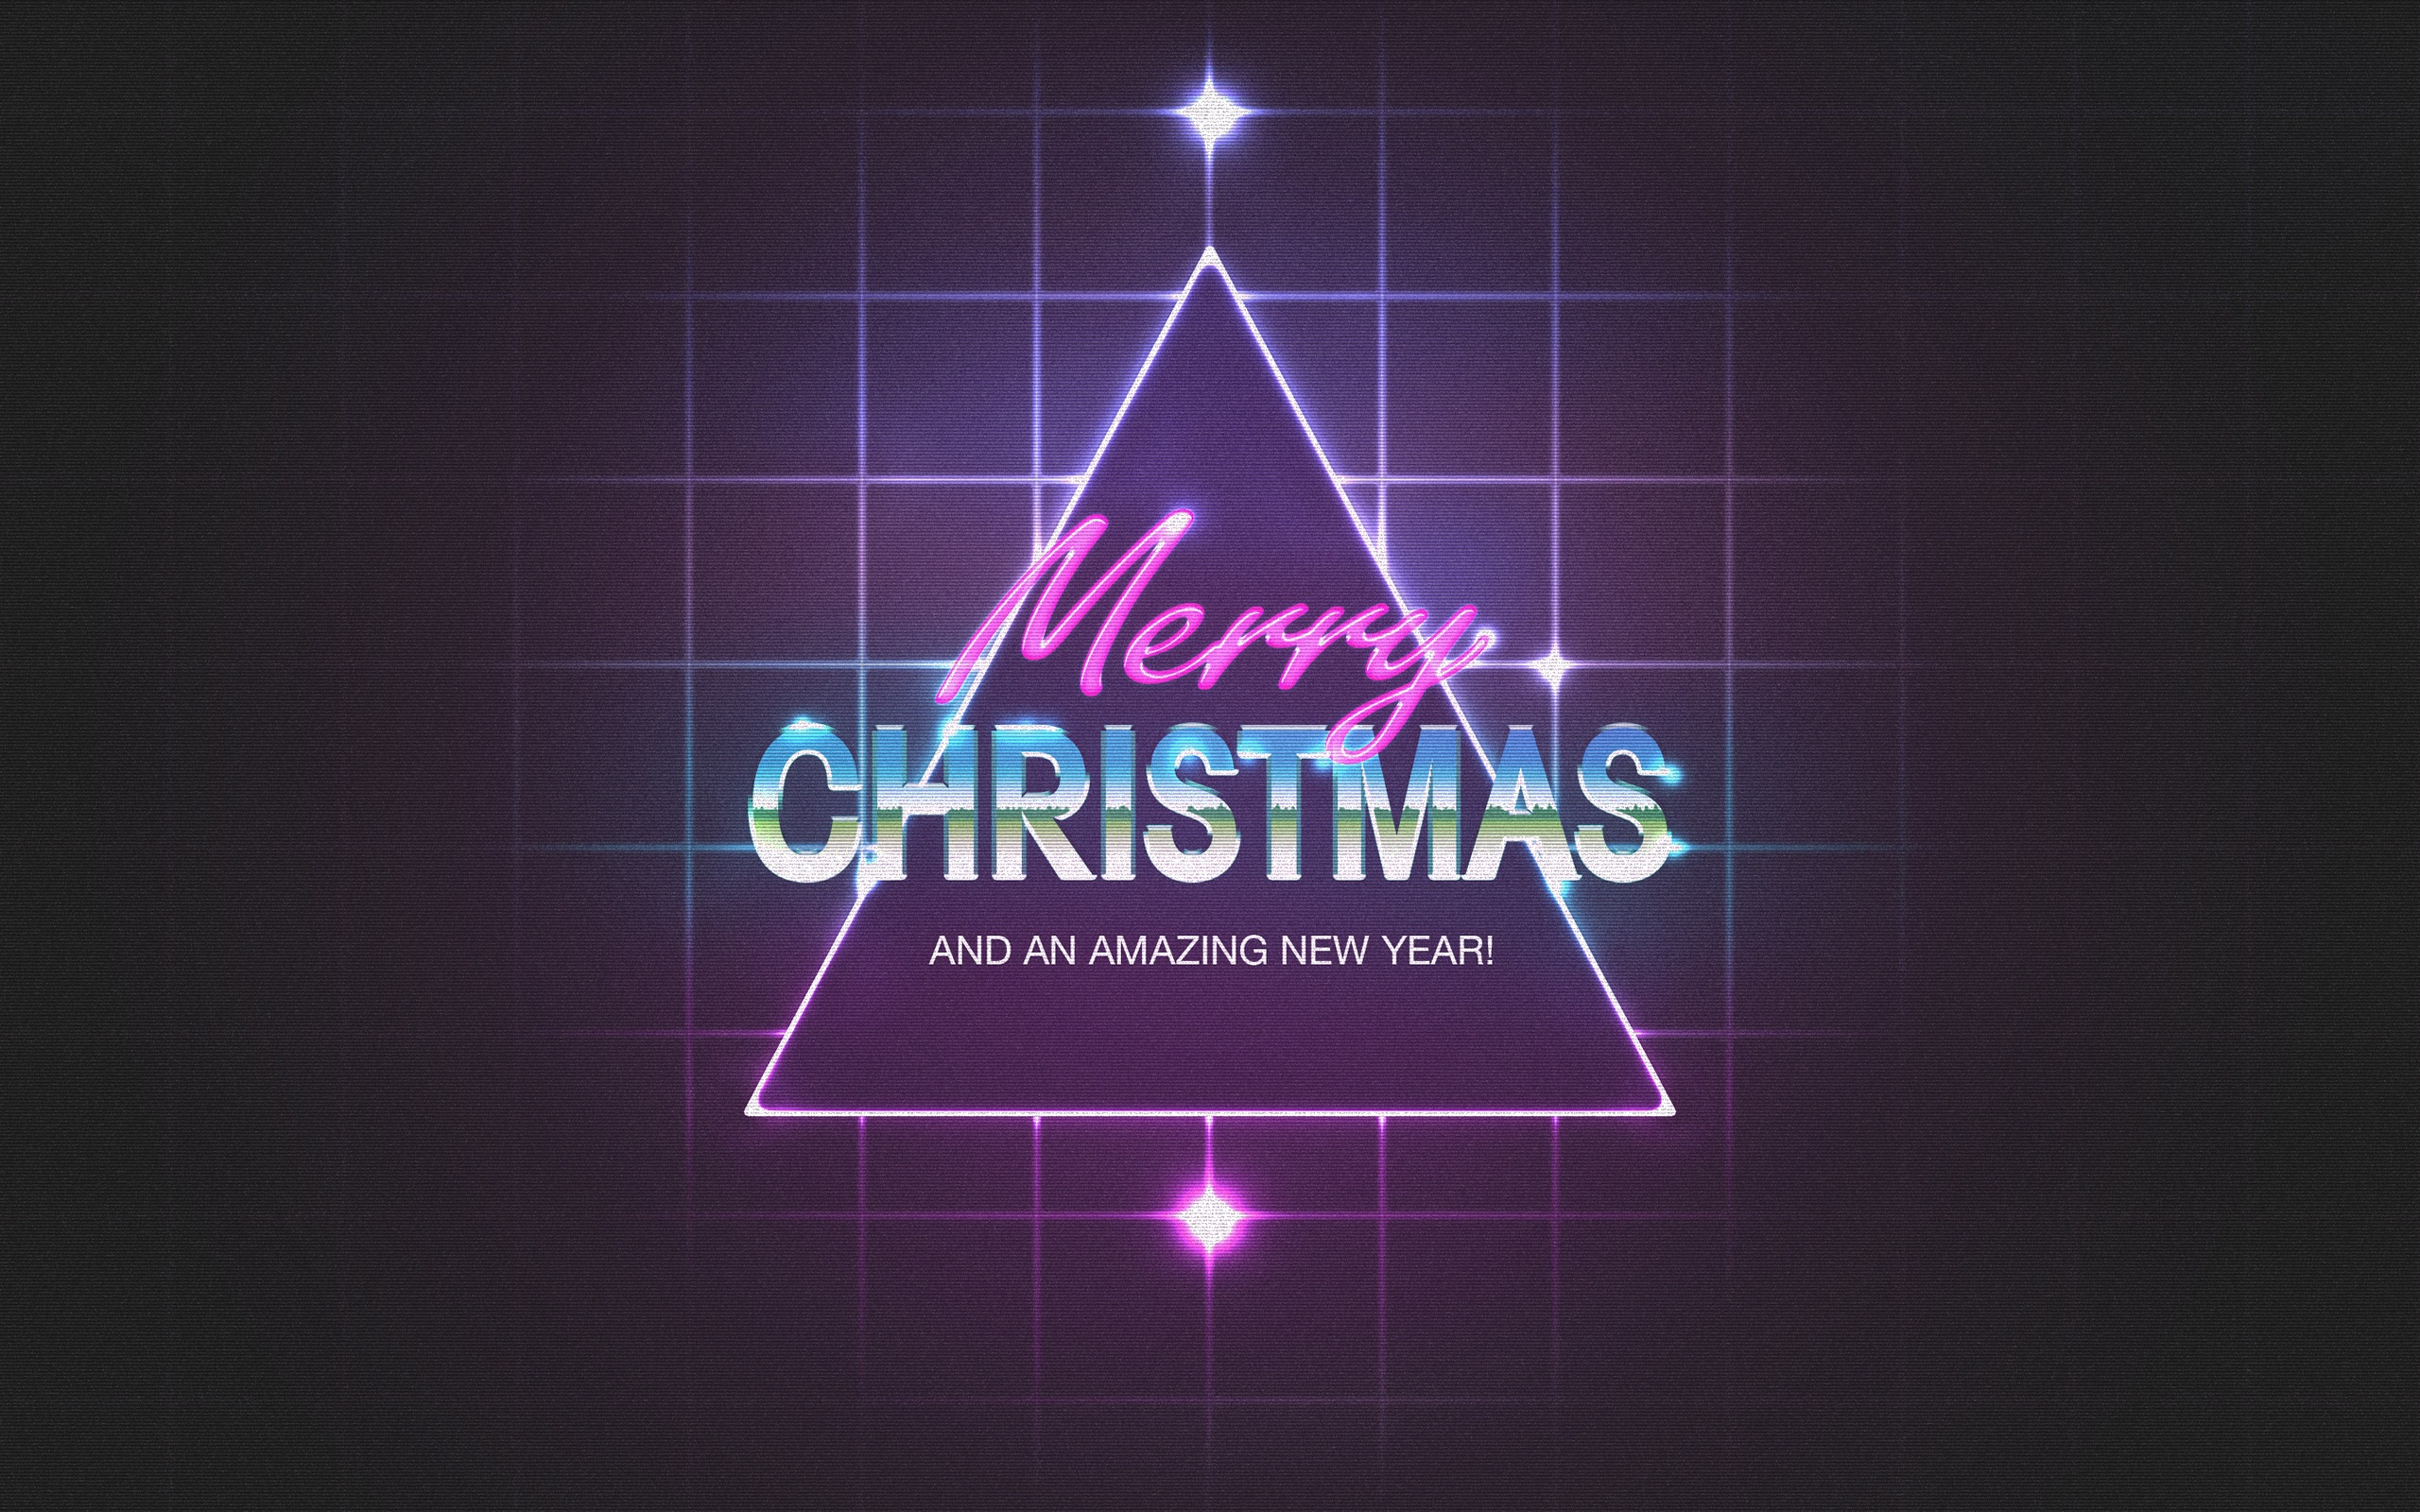 Merry Christmas Happy New Year 2014 Wallpapers